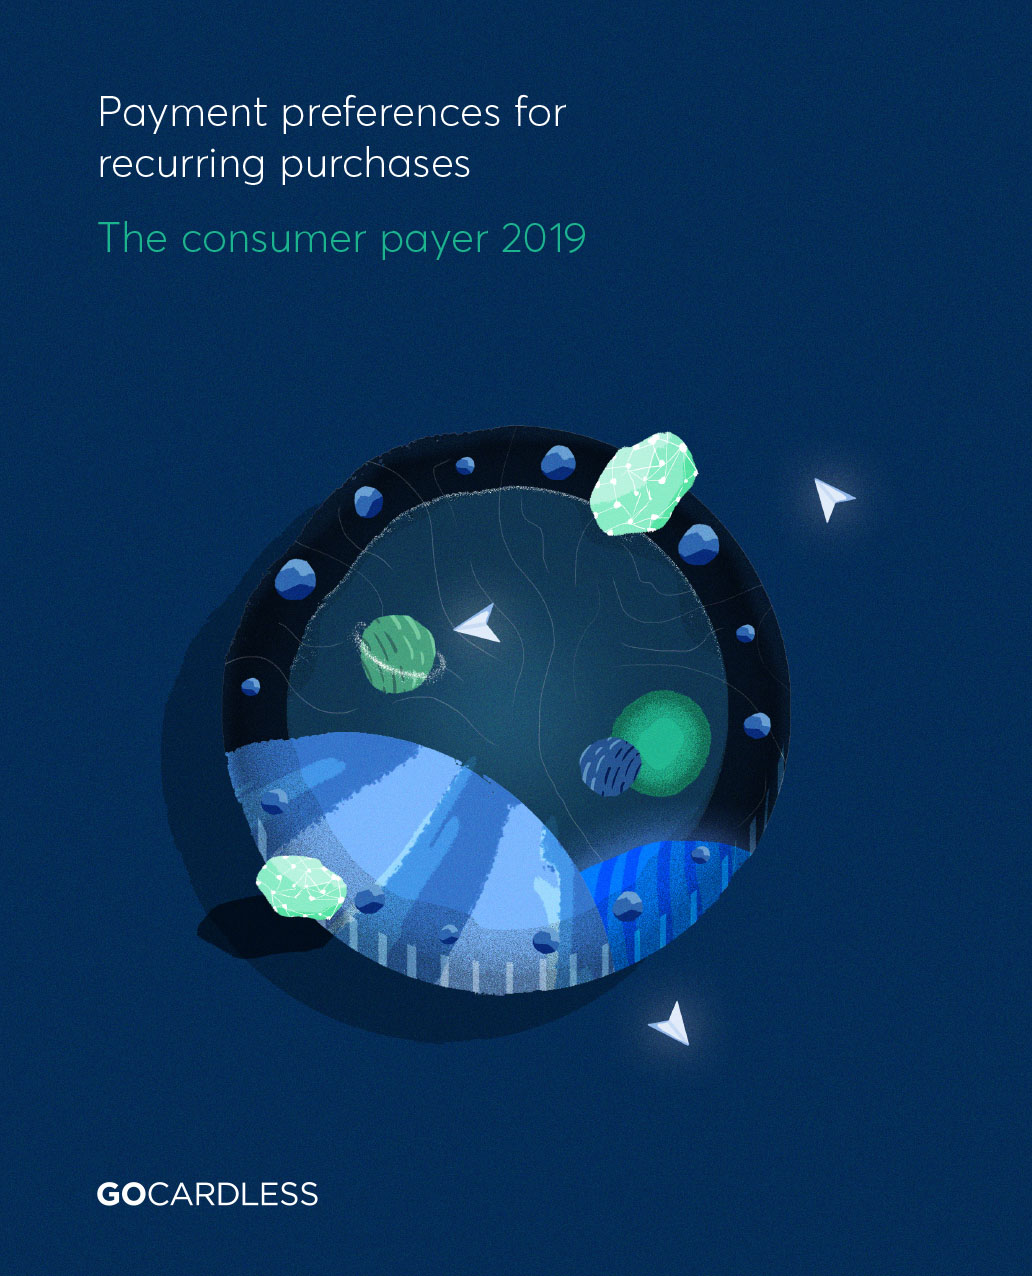 Payment preferences for recurring purchases: The consumer payer 2019